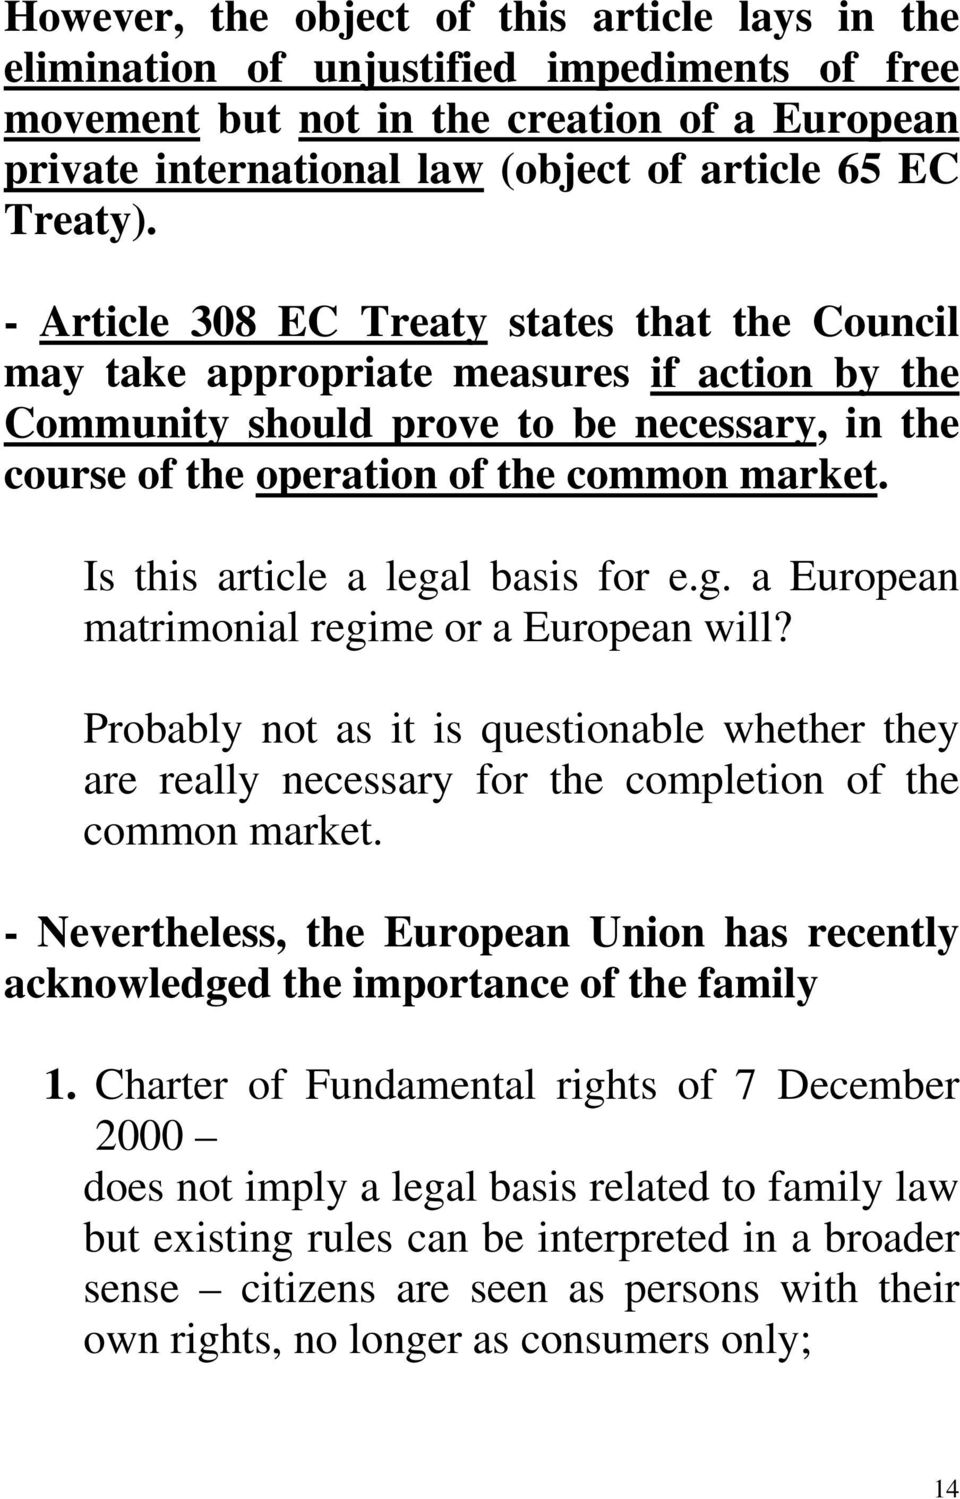 Is this article a legal basis for e.g. a European matrimonial regime or a European will? Probably not as it is questionable whether they are really necessary for the completion of the common market.